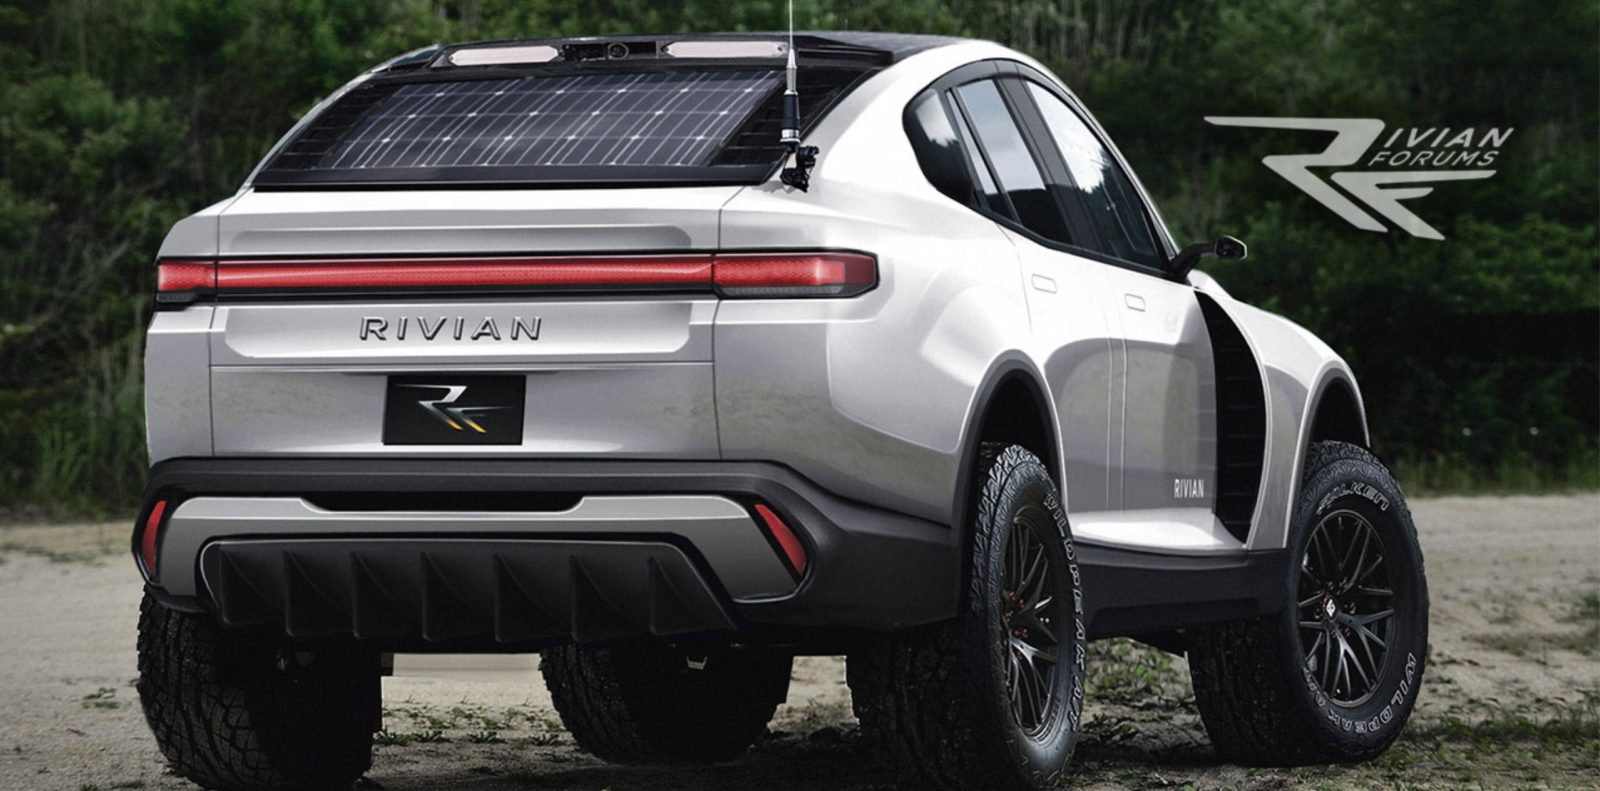 Rivian's next electric vehicle after pickup could be an ...